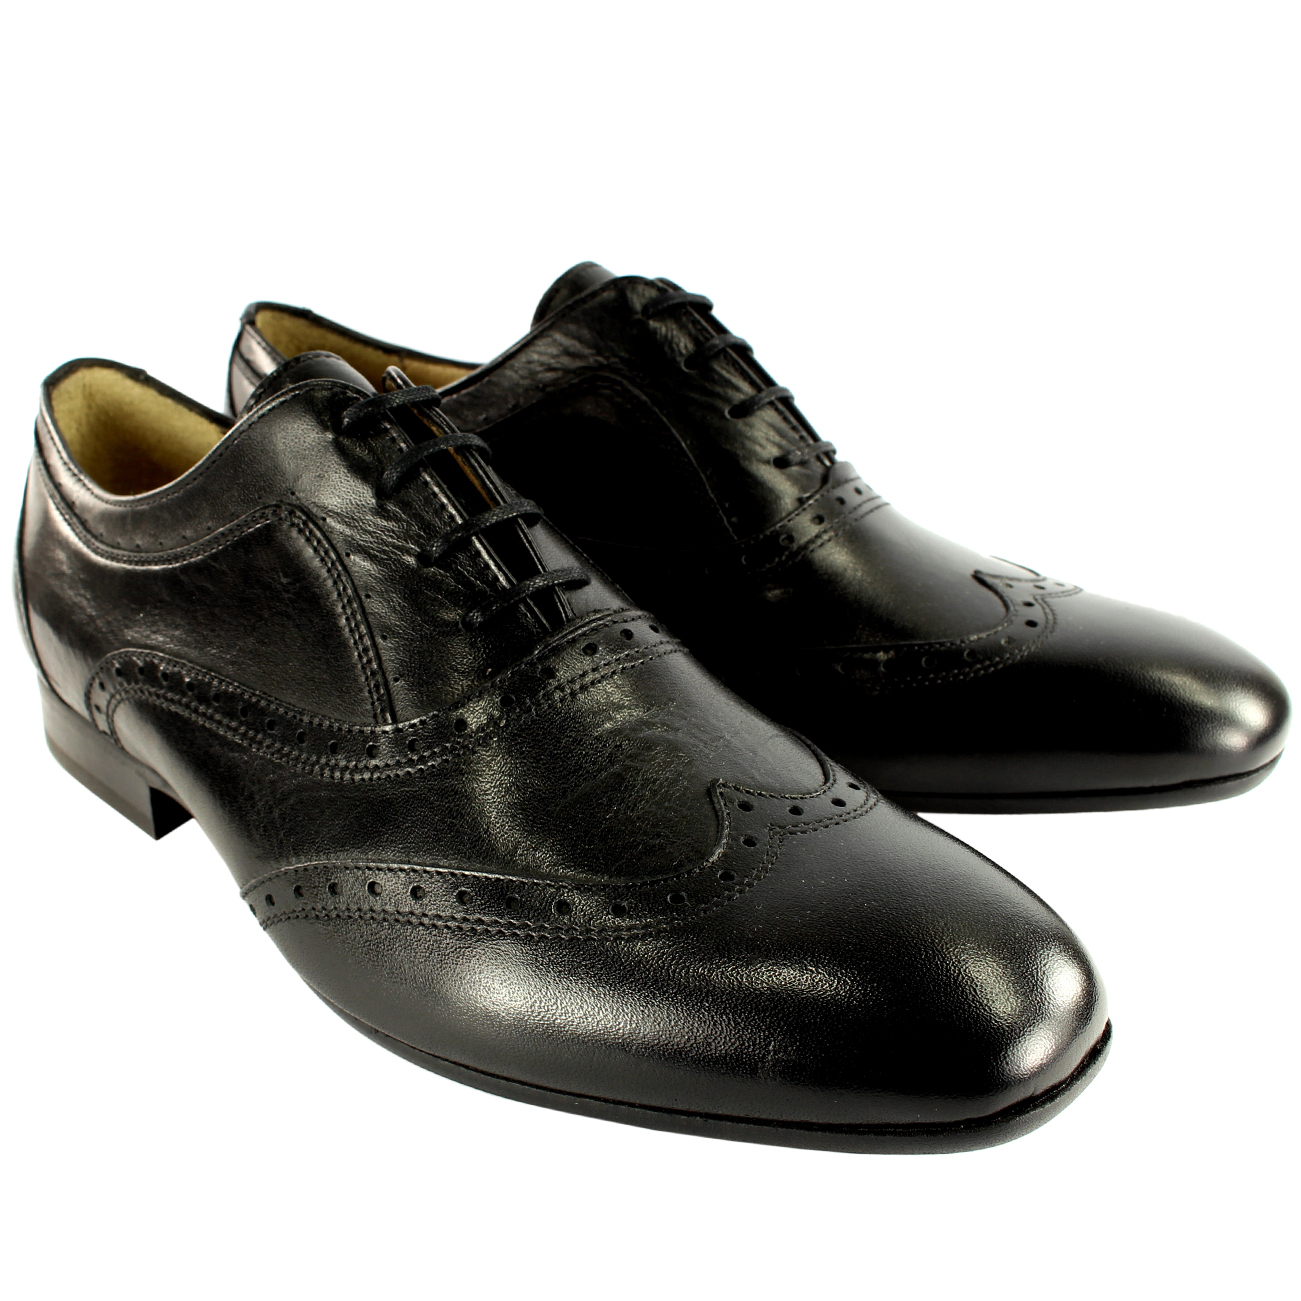 H By Hudson Francis Brouge Smart Shoes